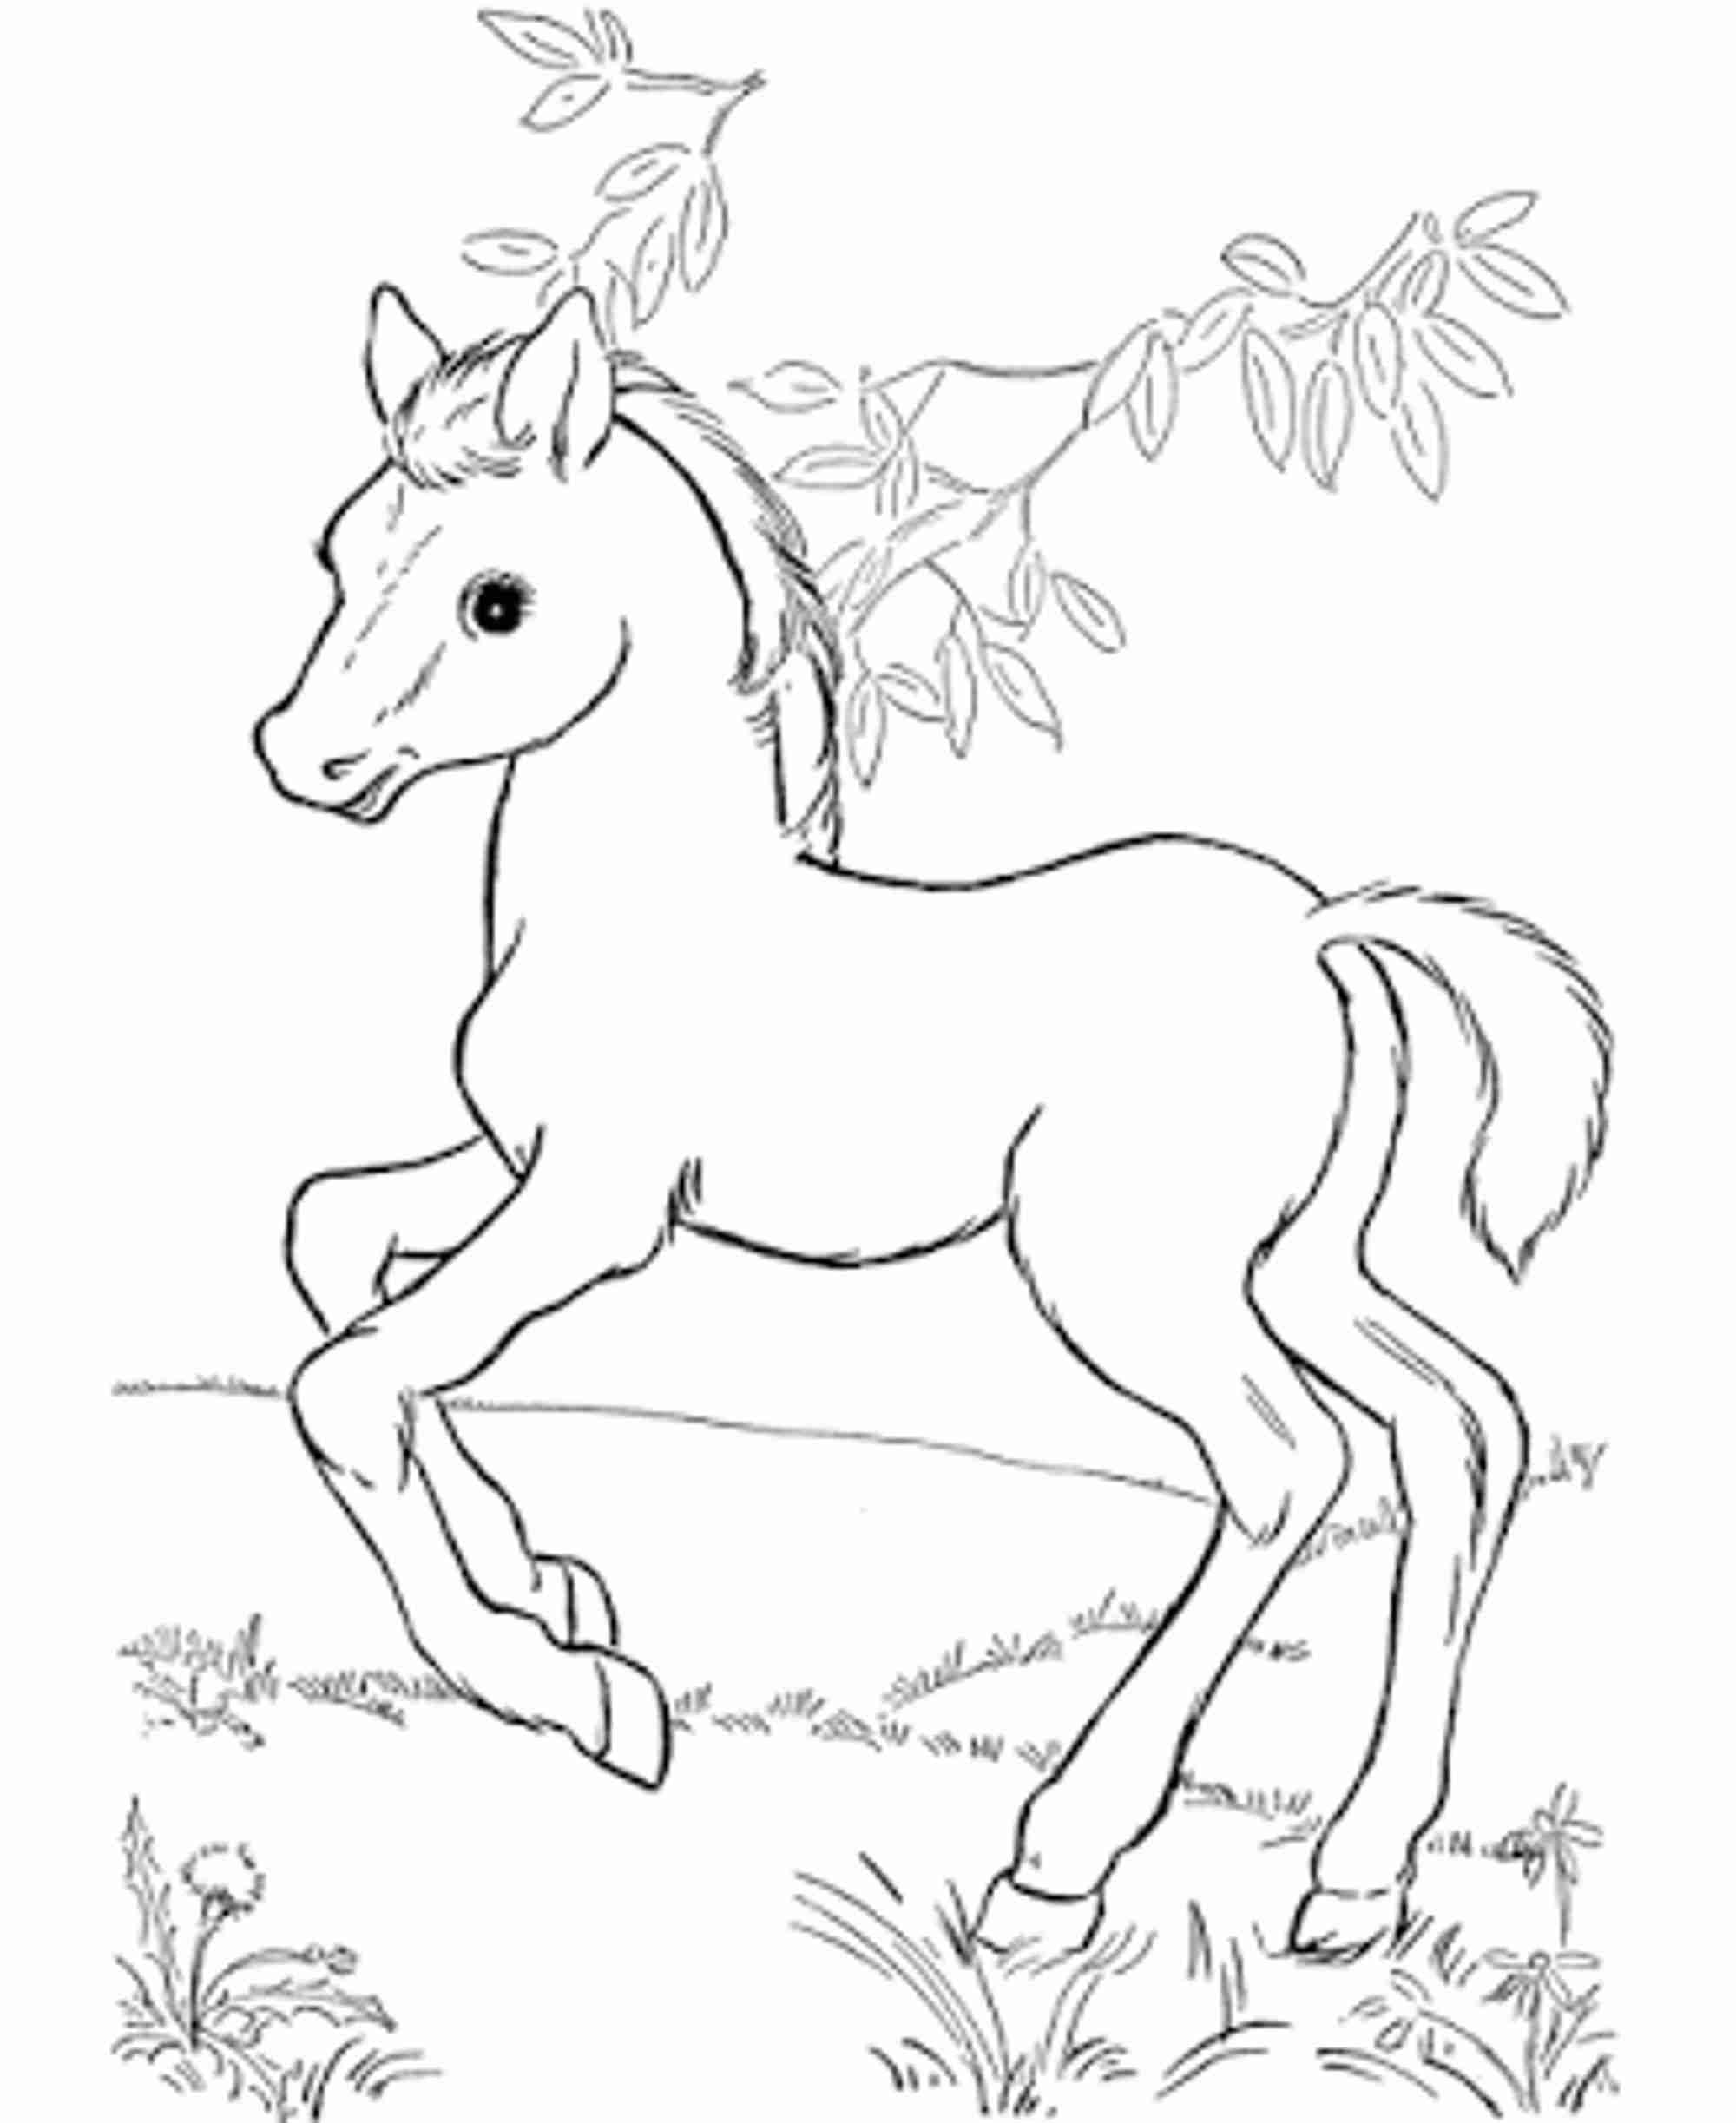 coloring sheet horse fun horse coloring pages for your kids printable horse coloring sheet